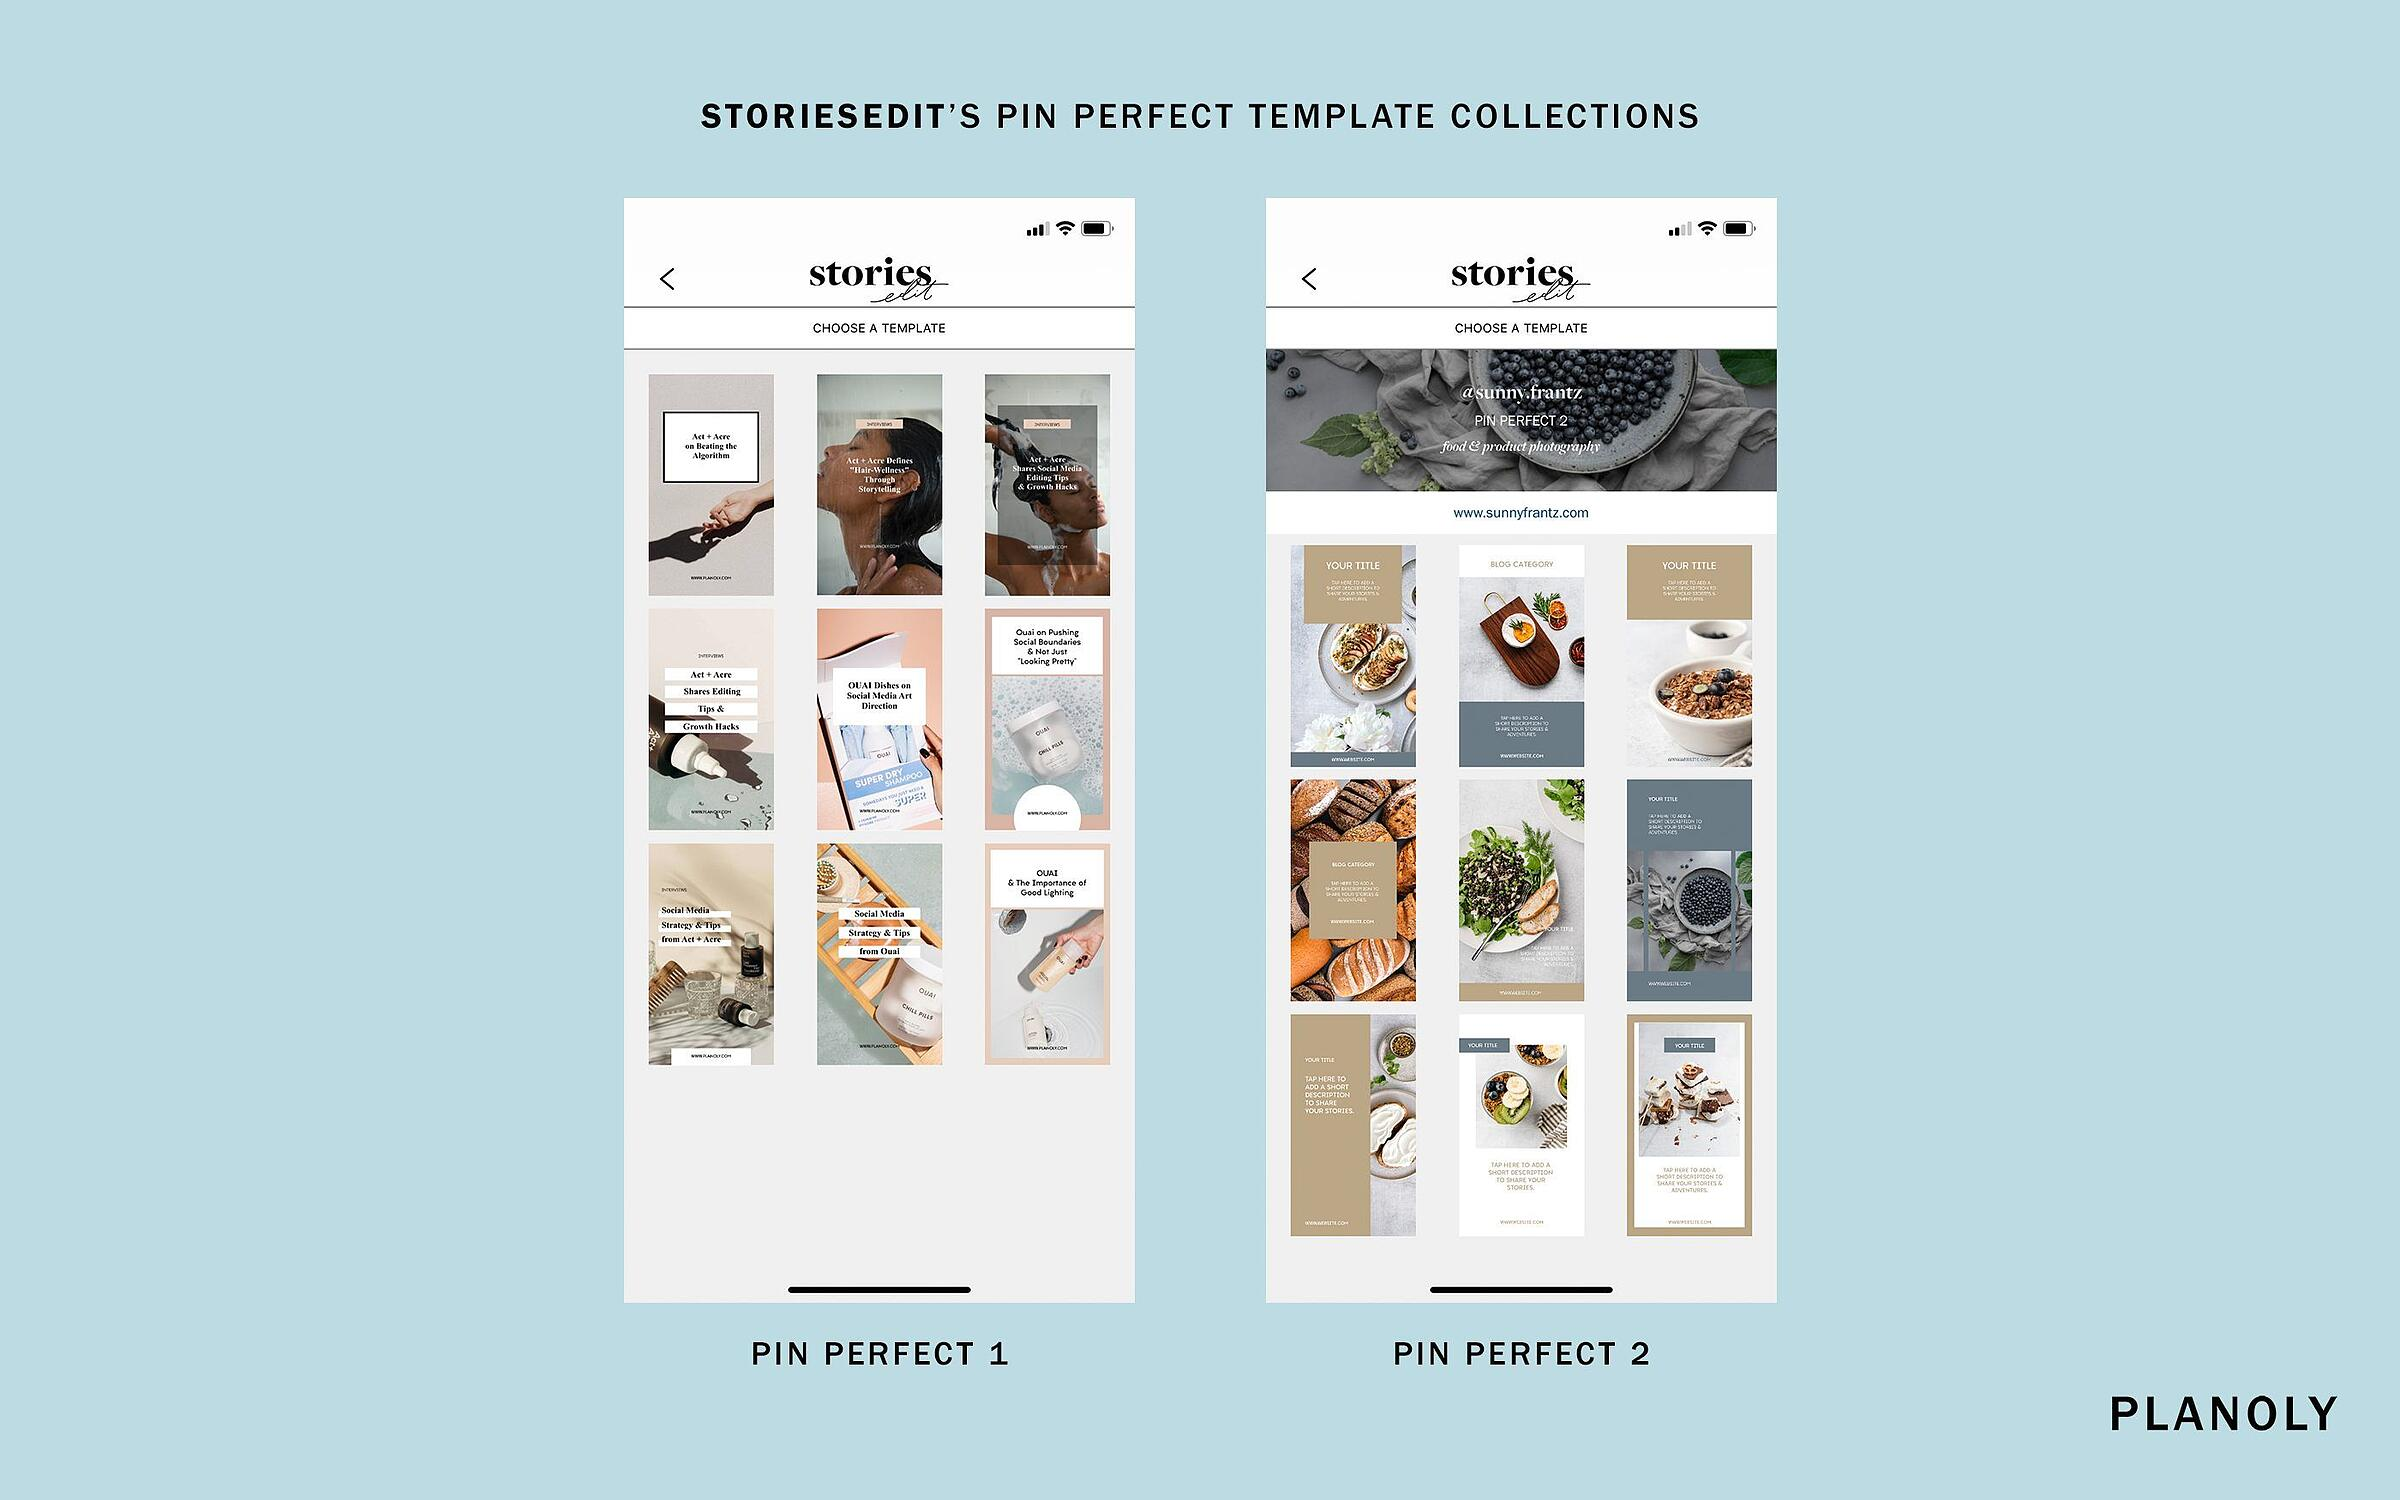 PLANOLY - Blog Post - How to Design the Perfect Pin with the SE Pin Perfect Collection - Image 1